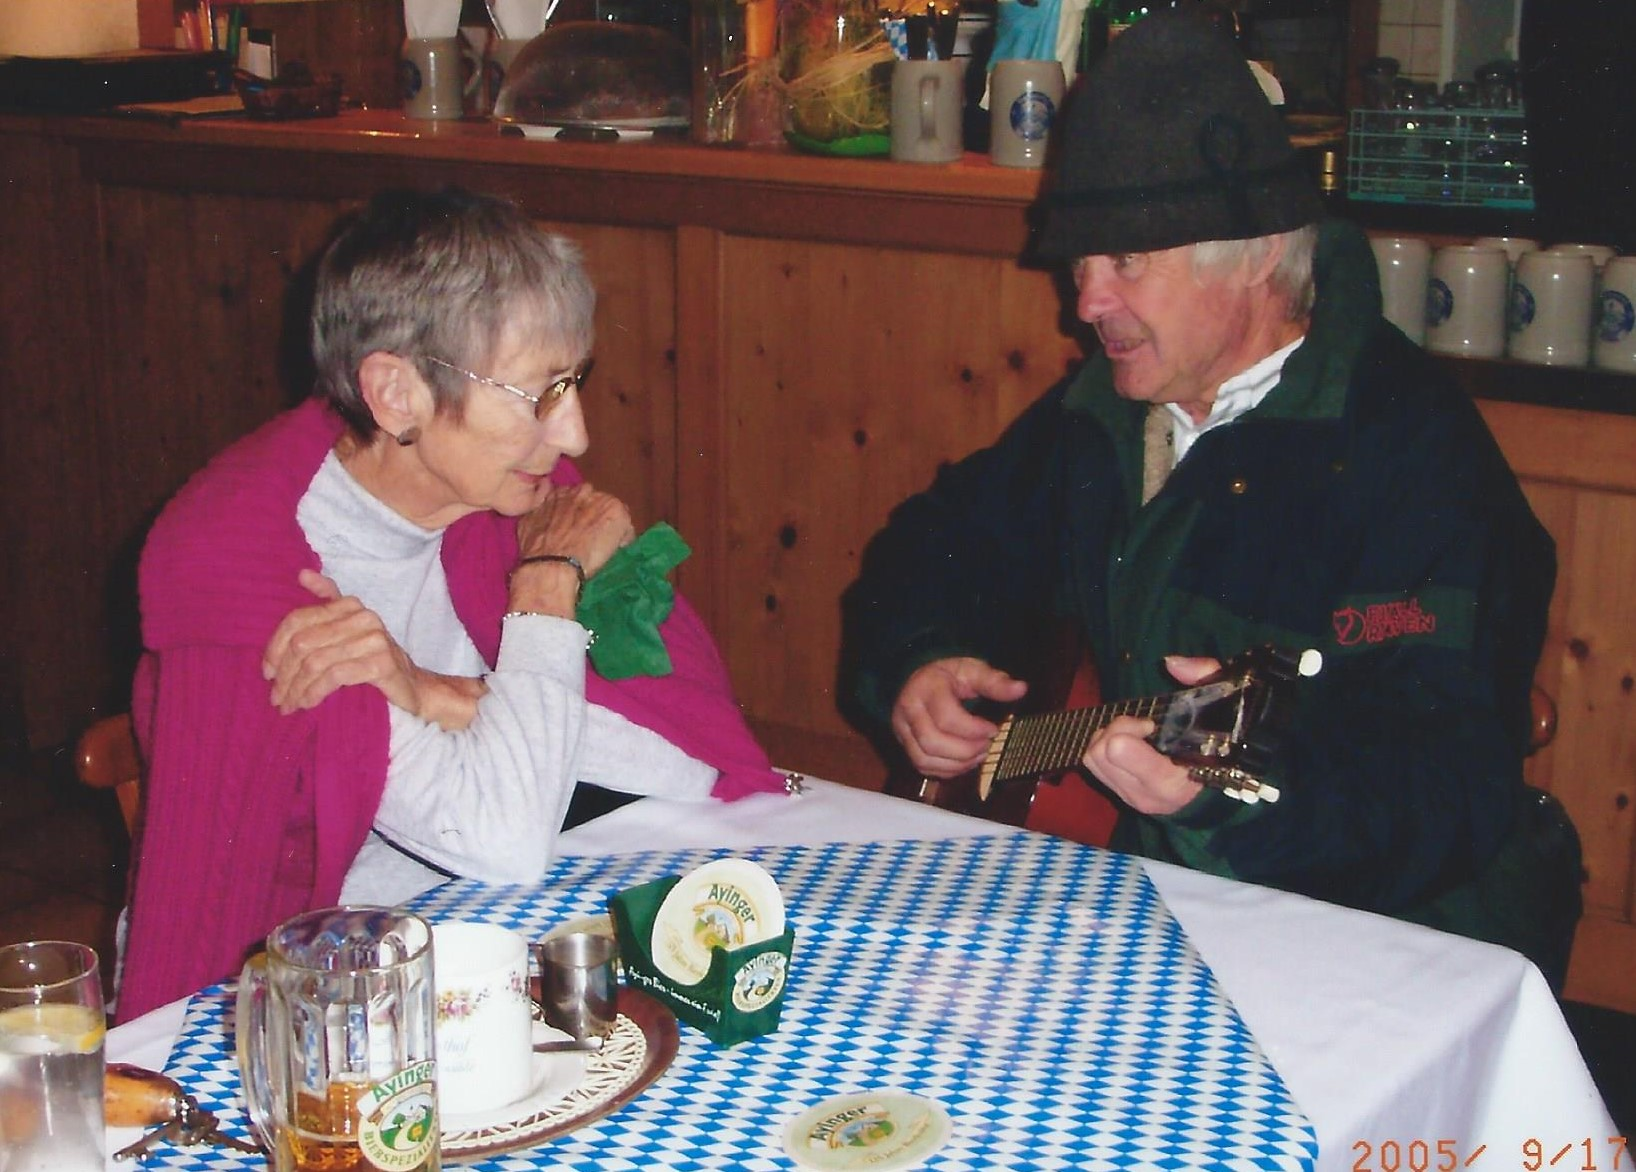 Being serenaded by a German suitor